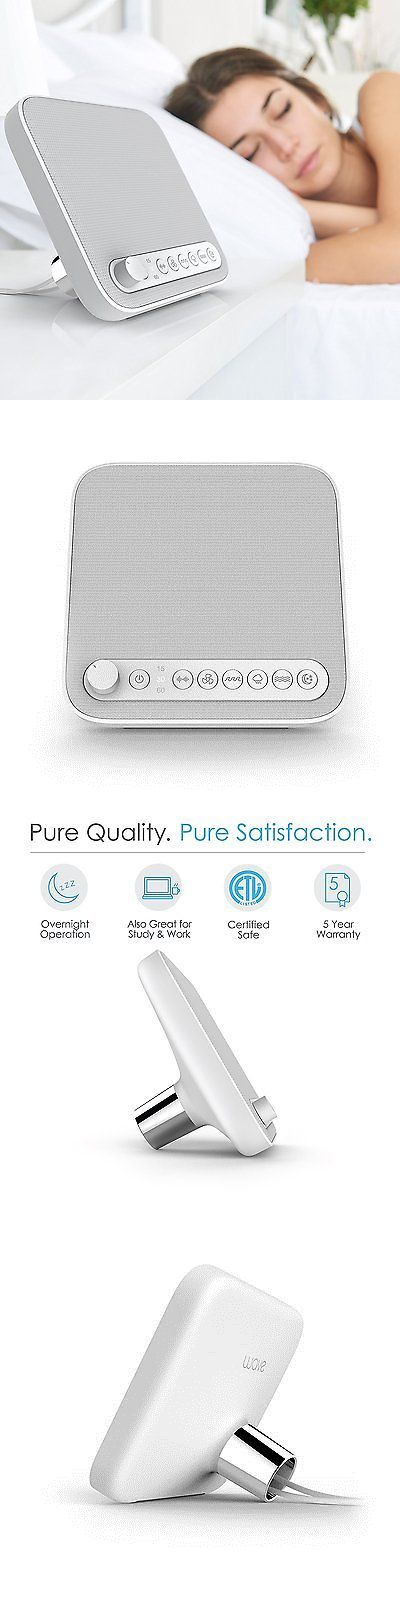 Sound Therapy: Sound Therapy Machine Sleep Noise Sound White Soothing Nature Relax Conair Baby -> BUY IT NOW ONLY: $53.09 on eBay!